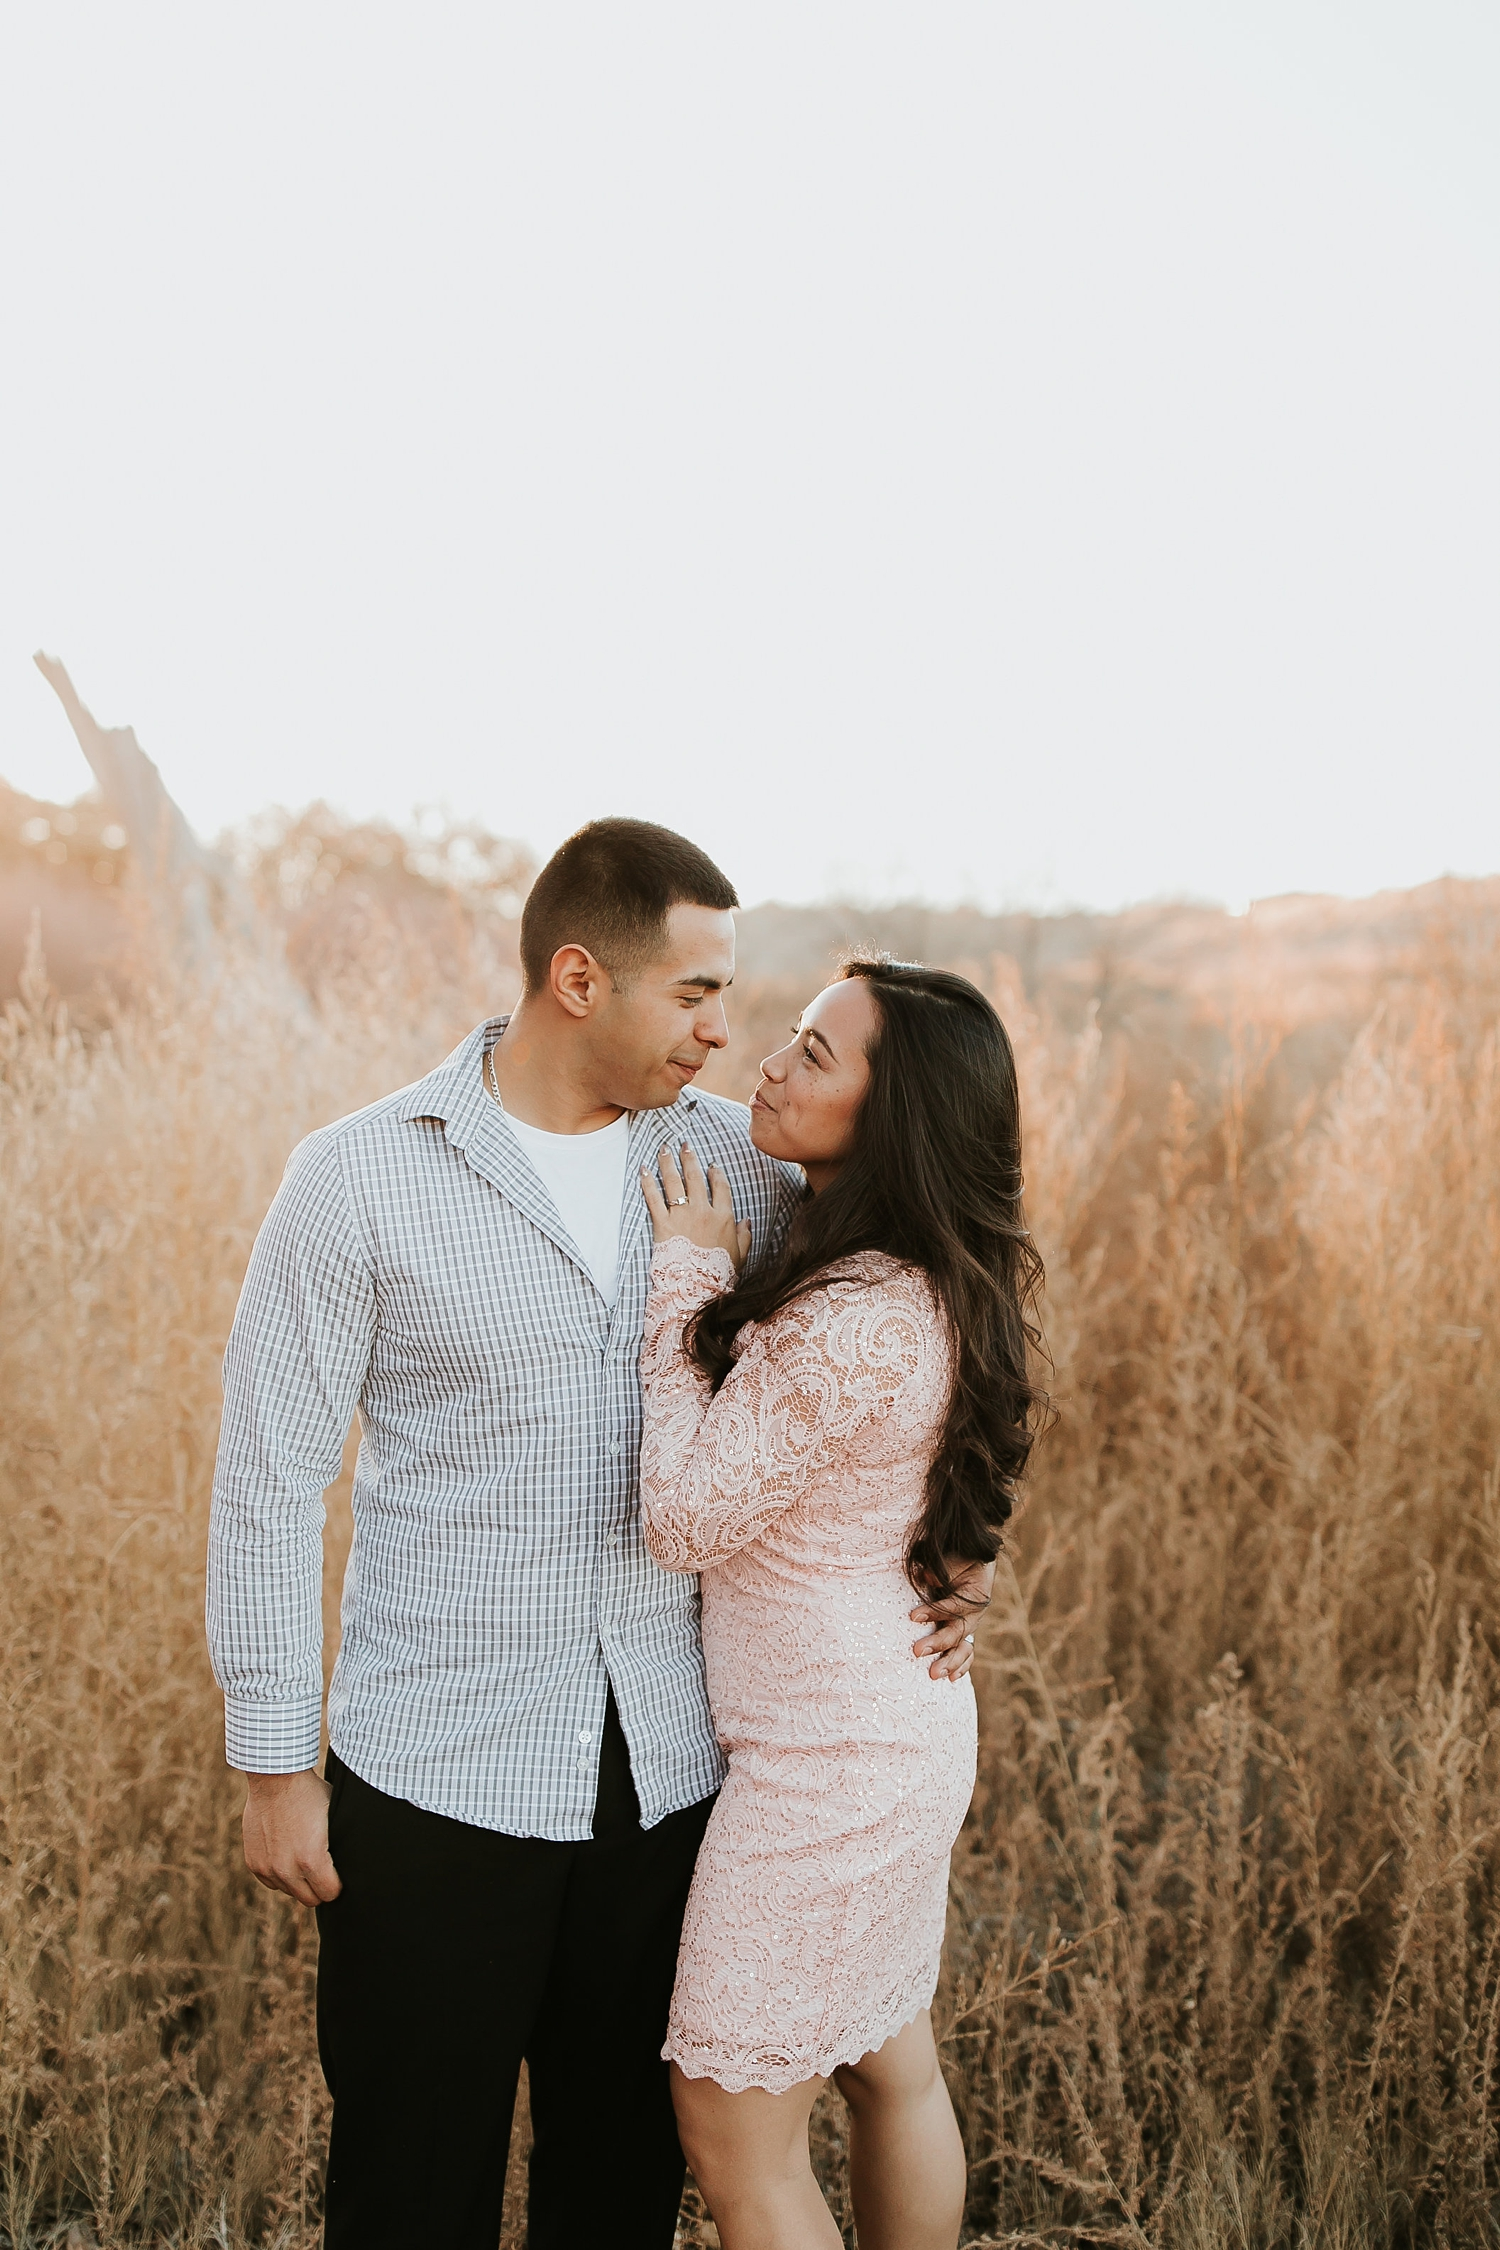 Alicia+lucia+photography+-+albuquerque+wedding+photographer+-+santa+fe+wedding+photography+-+new+mexico+wedding+photographer+-+albuquerque+winter+engagement+session_0006.jpg